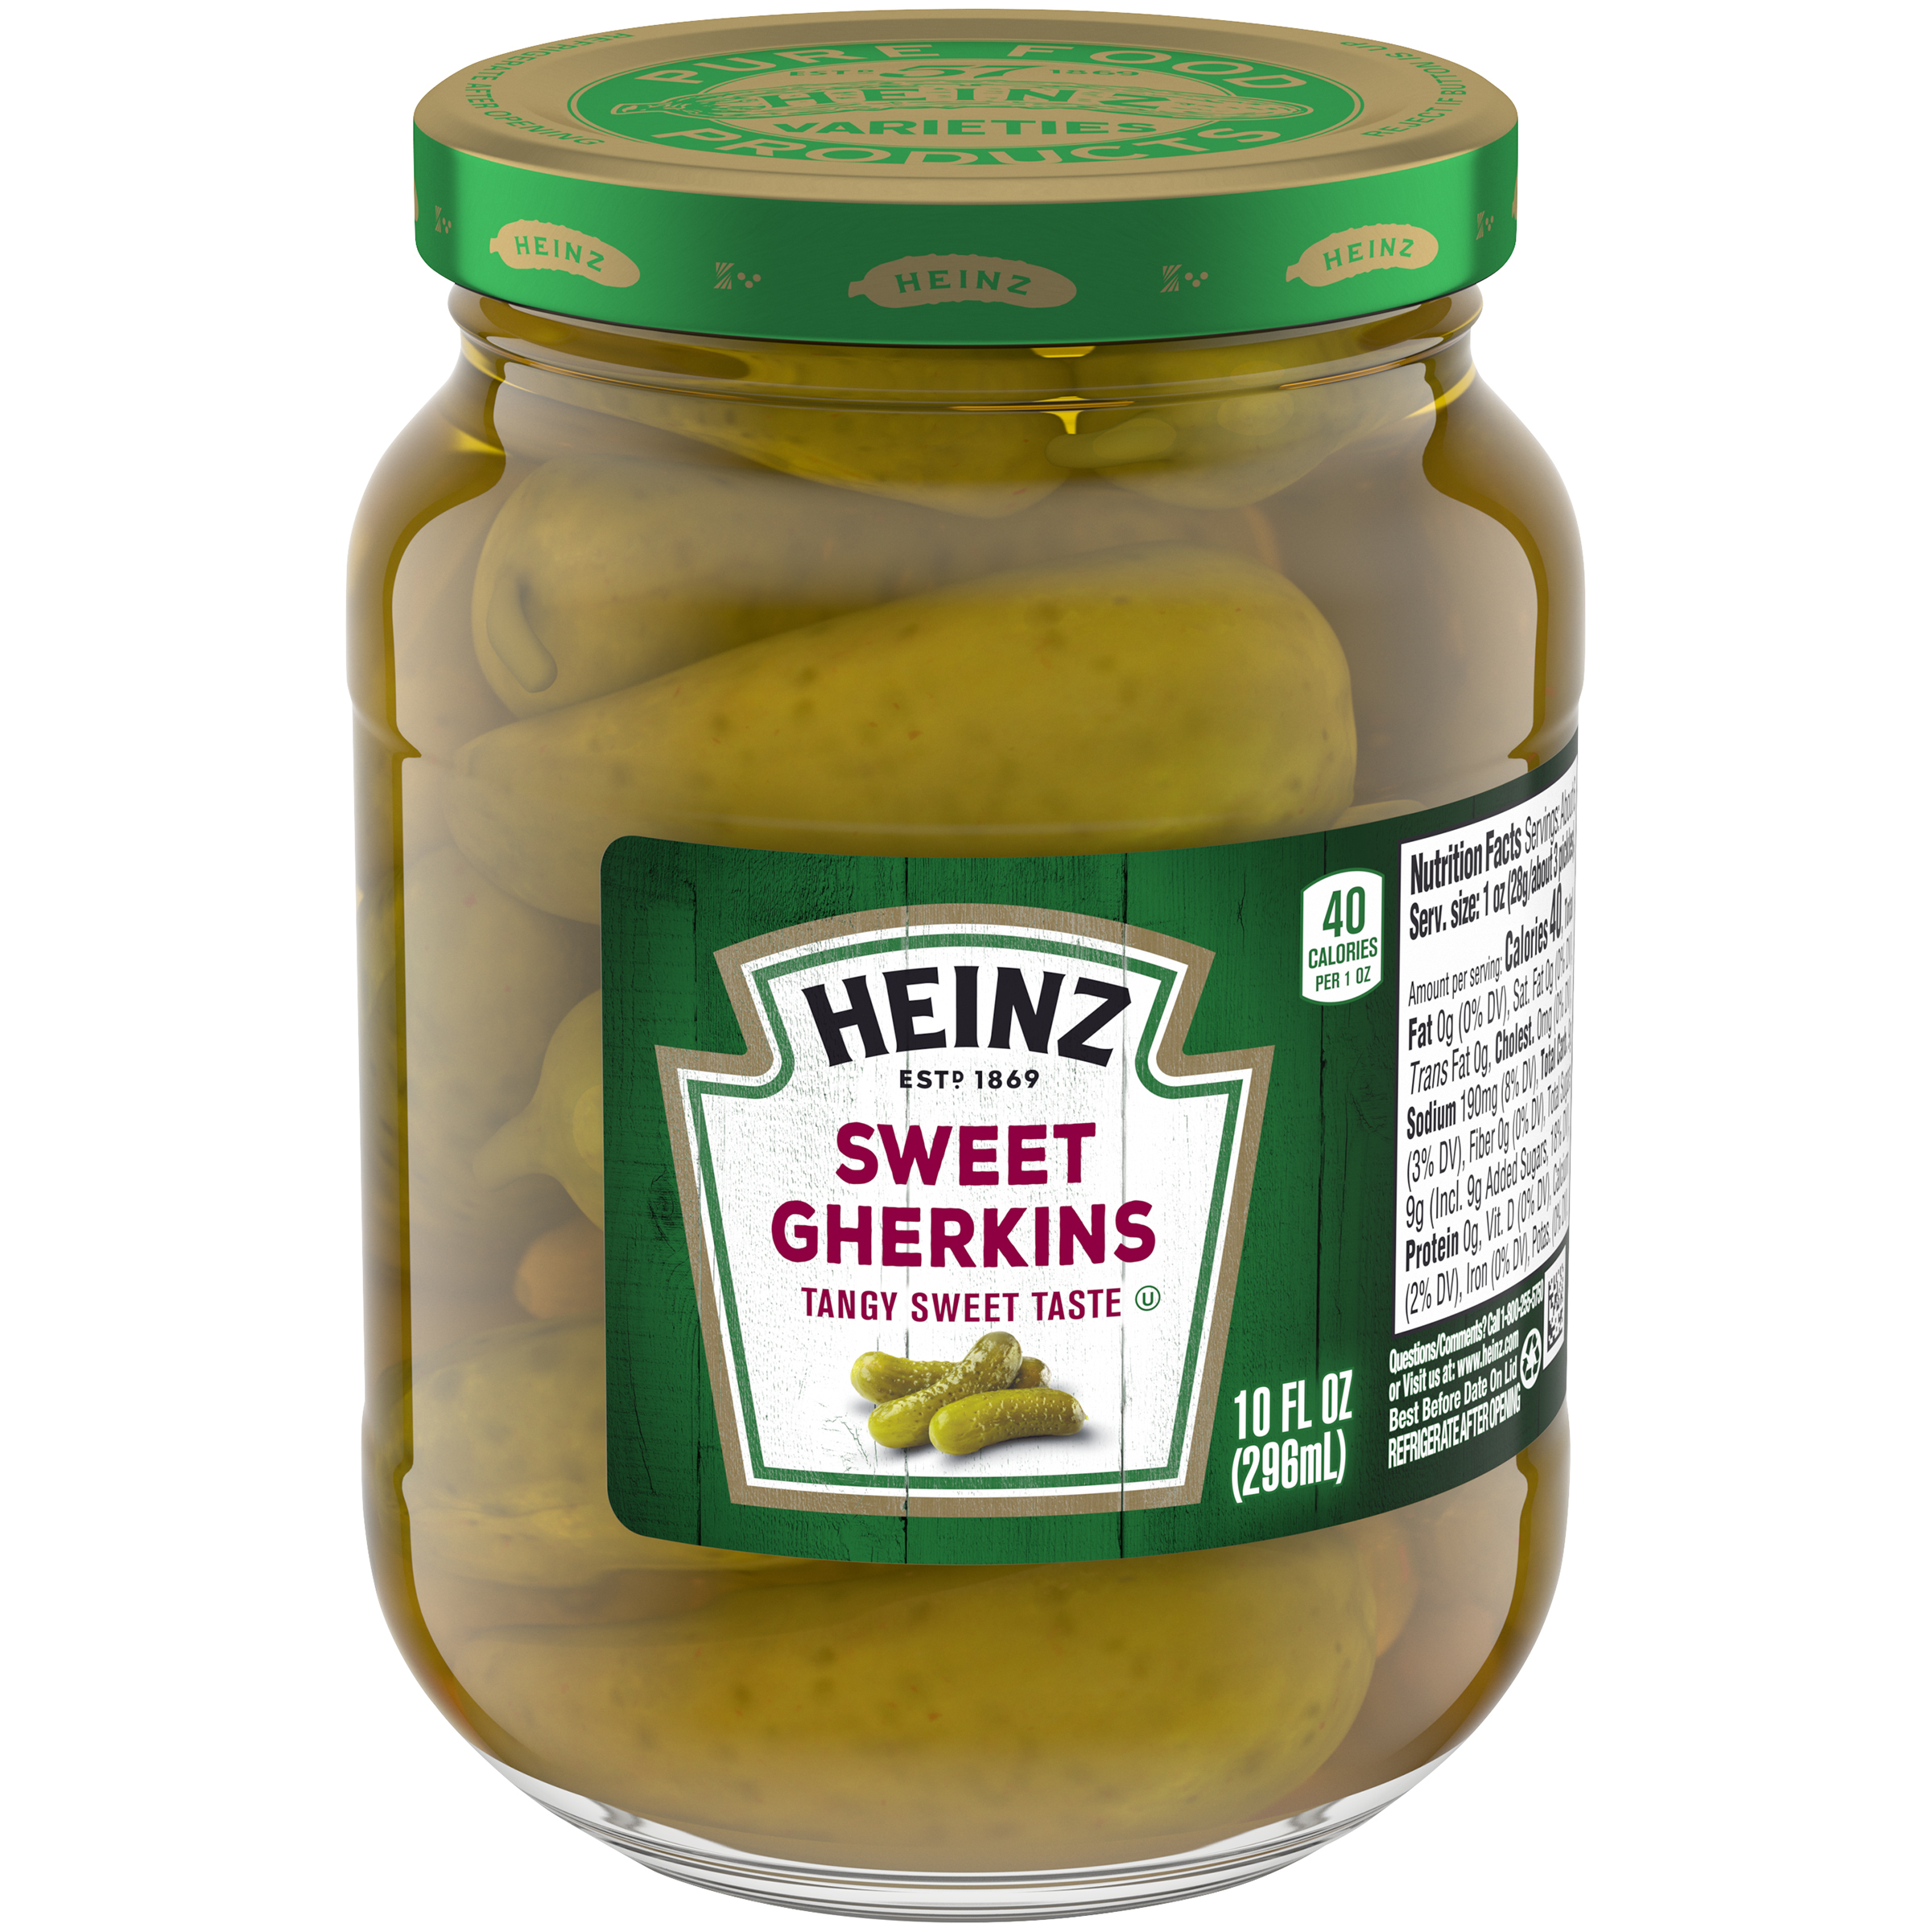 Heinz Sweet Midget Gherkins Pickles 10 fl oz Jar